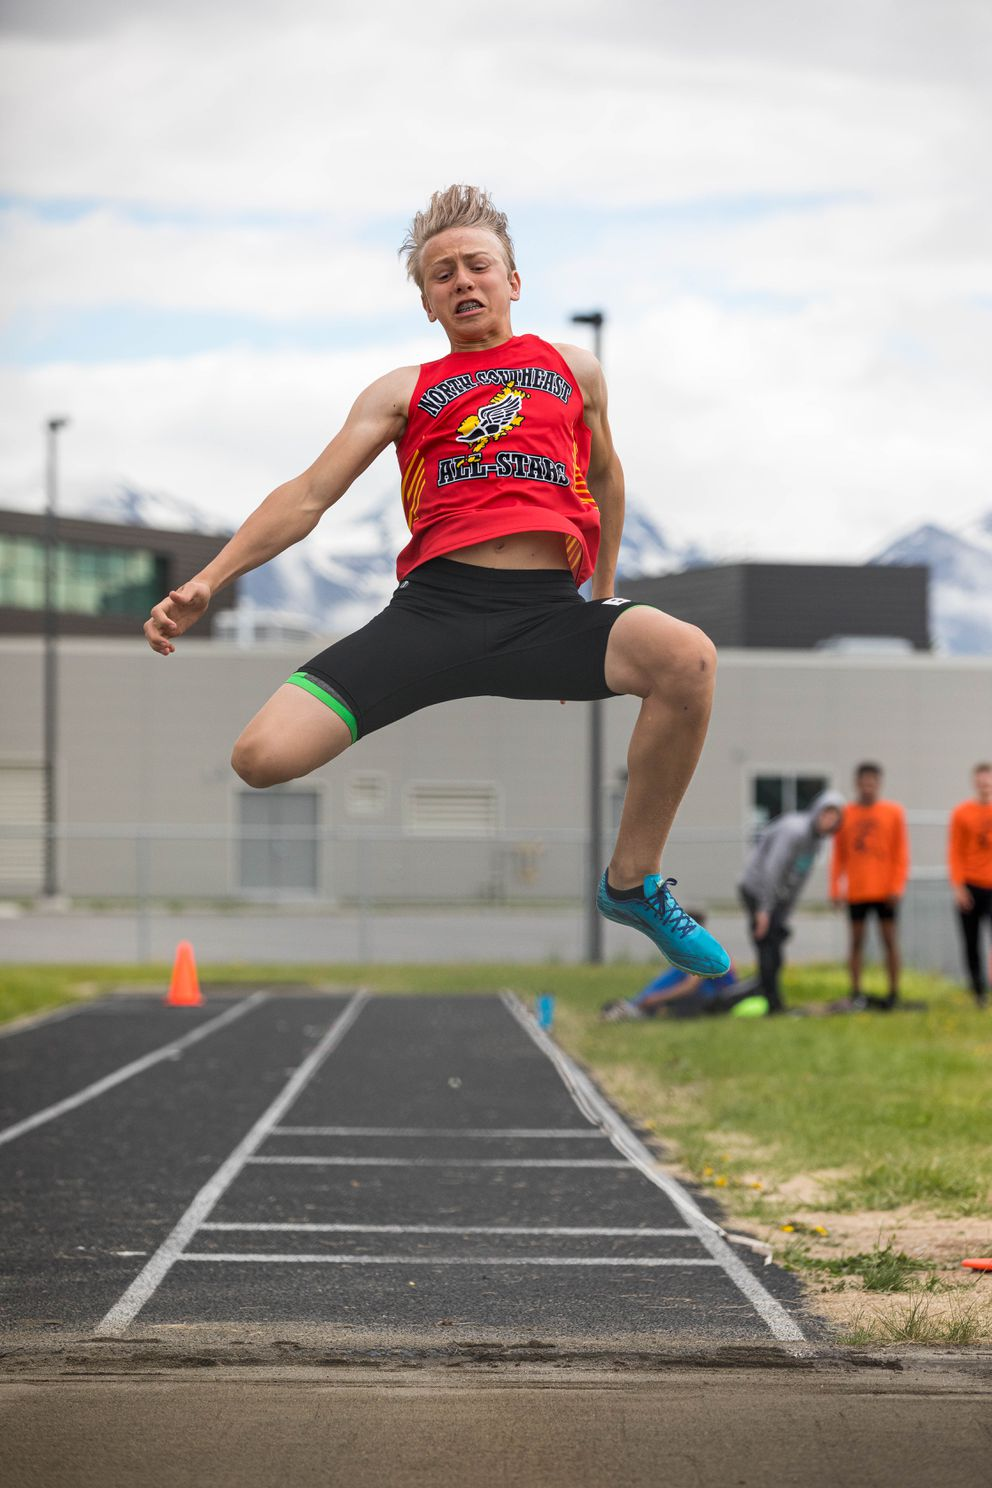 Lathrop's Riley Knott competes in the long jump at the Brian Young Invitational Friday, May 31, 2019 at West High. (Loren Holmes / ADN)